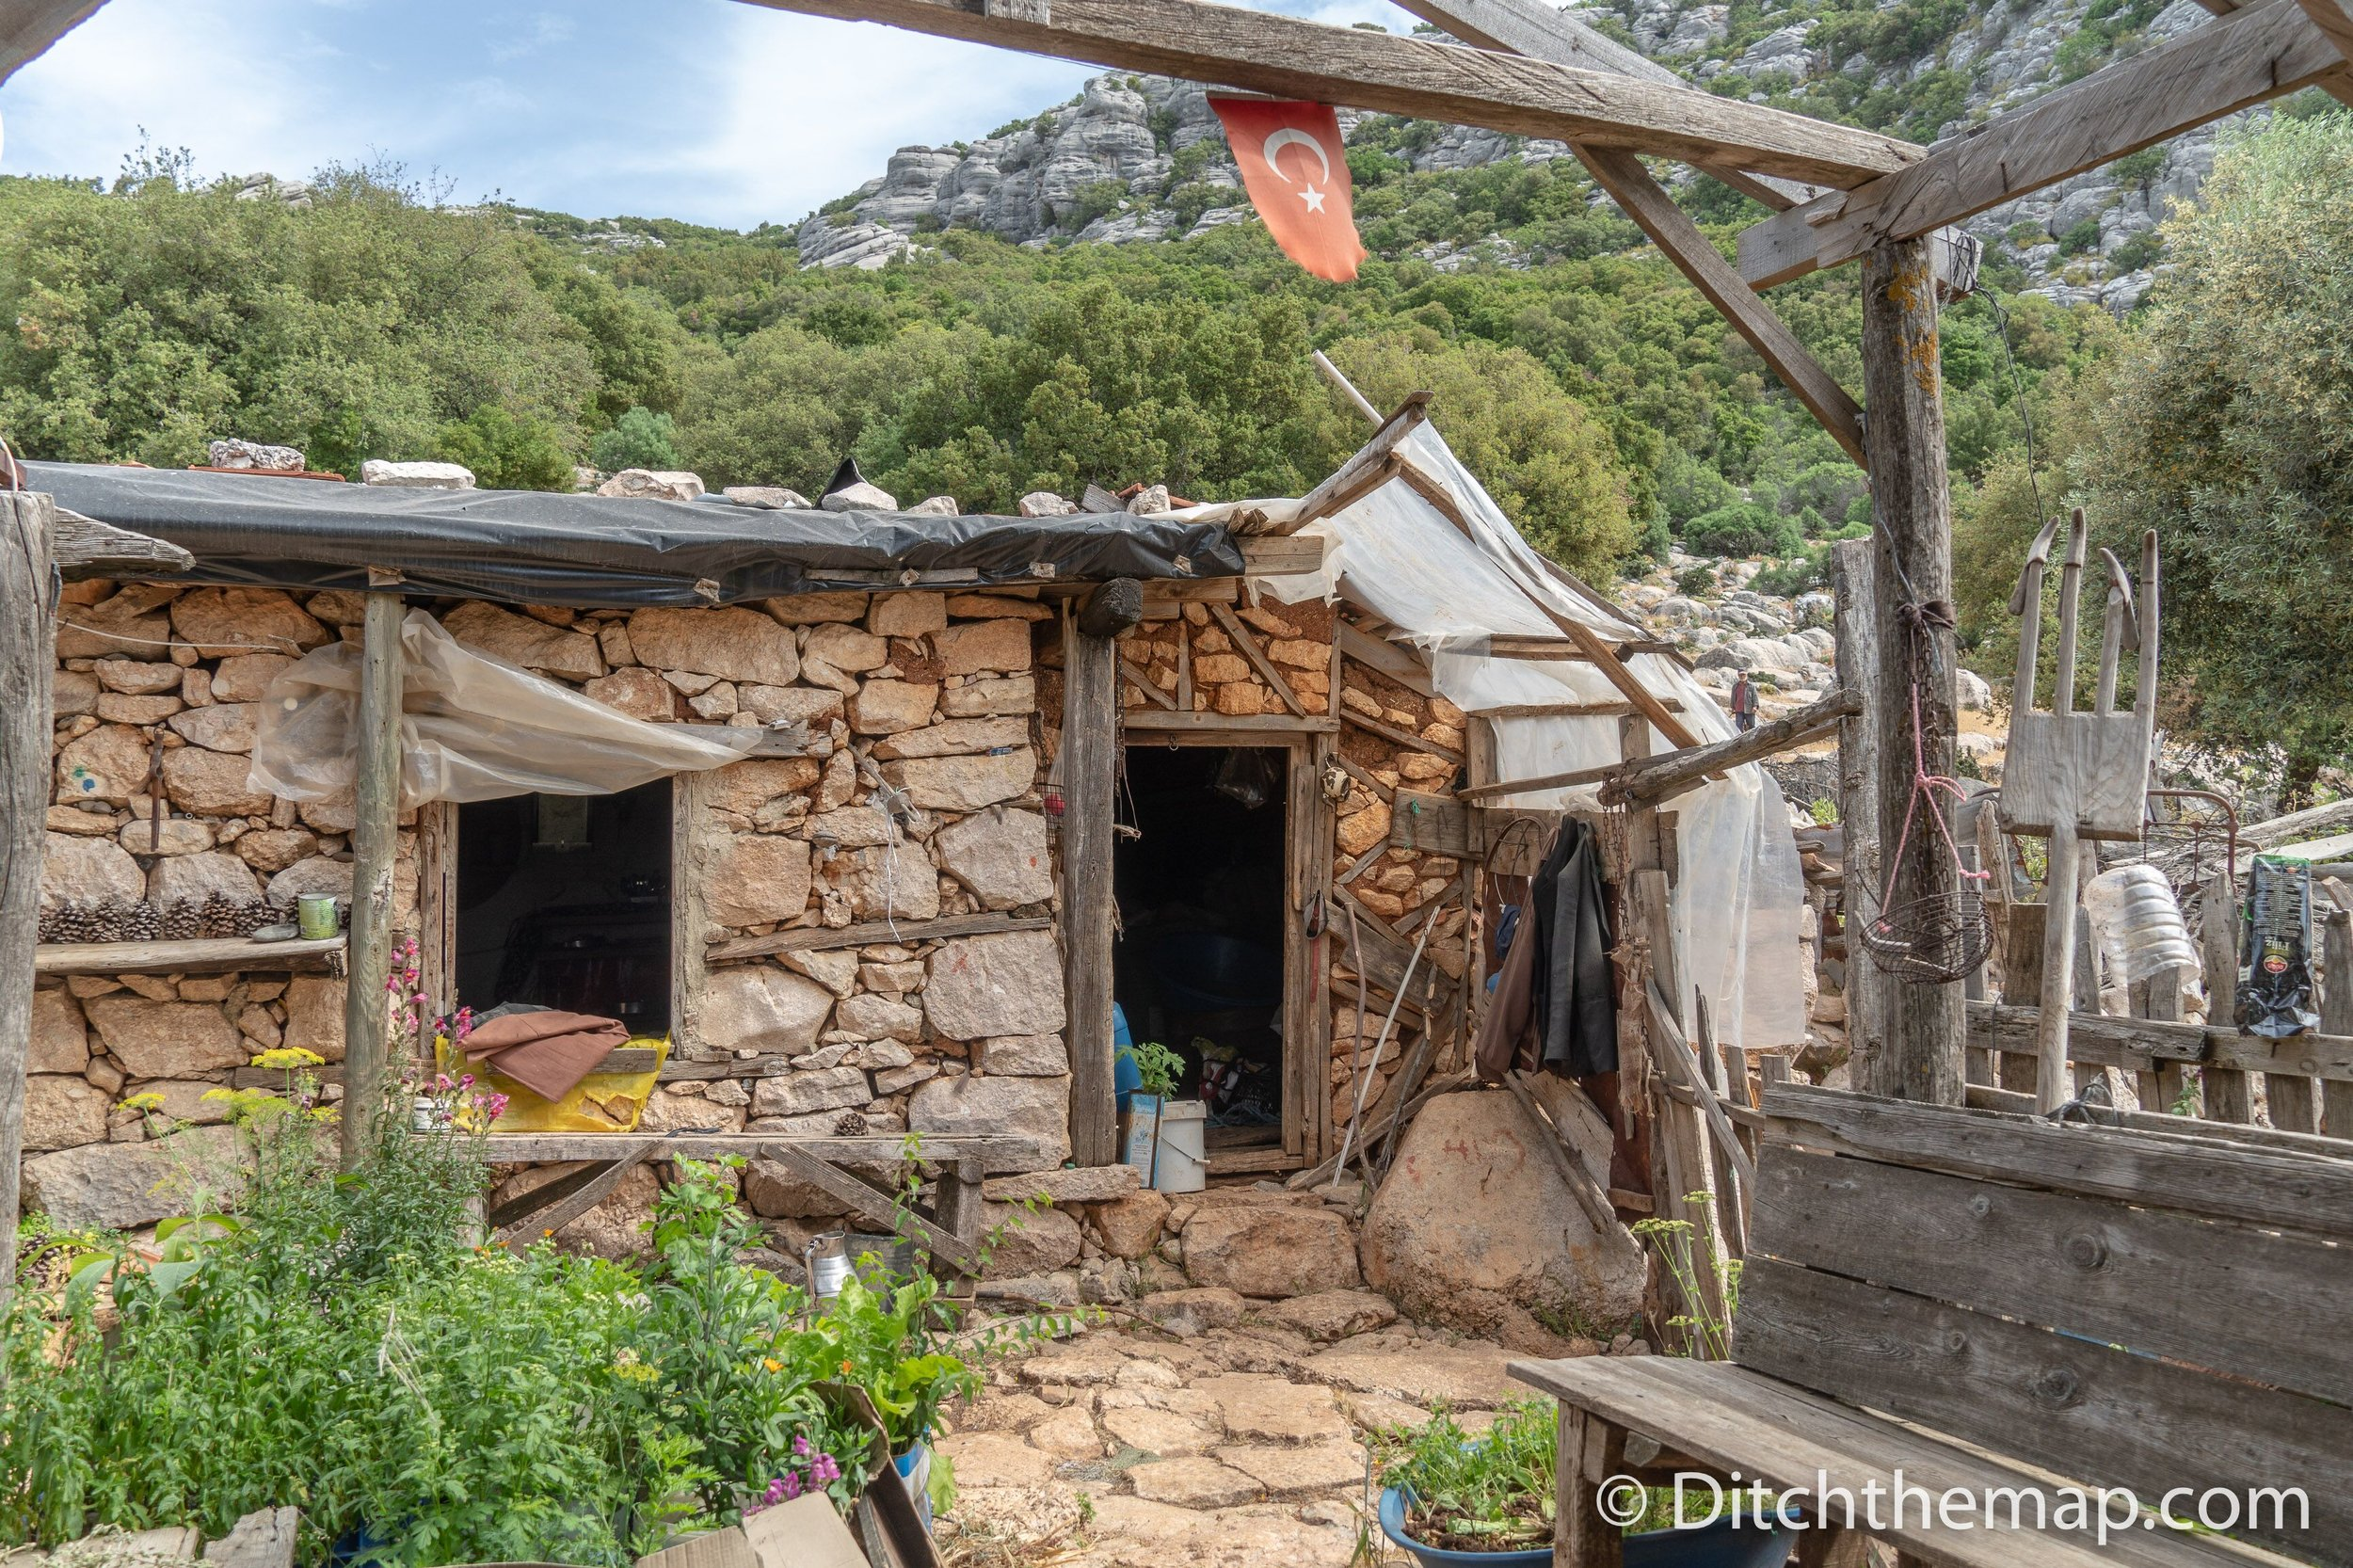 A villager's home on the Lycian Way